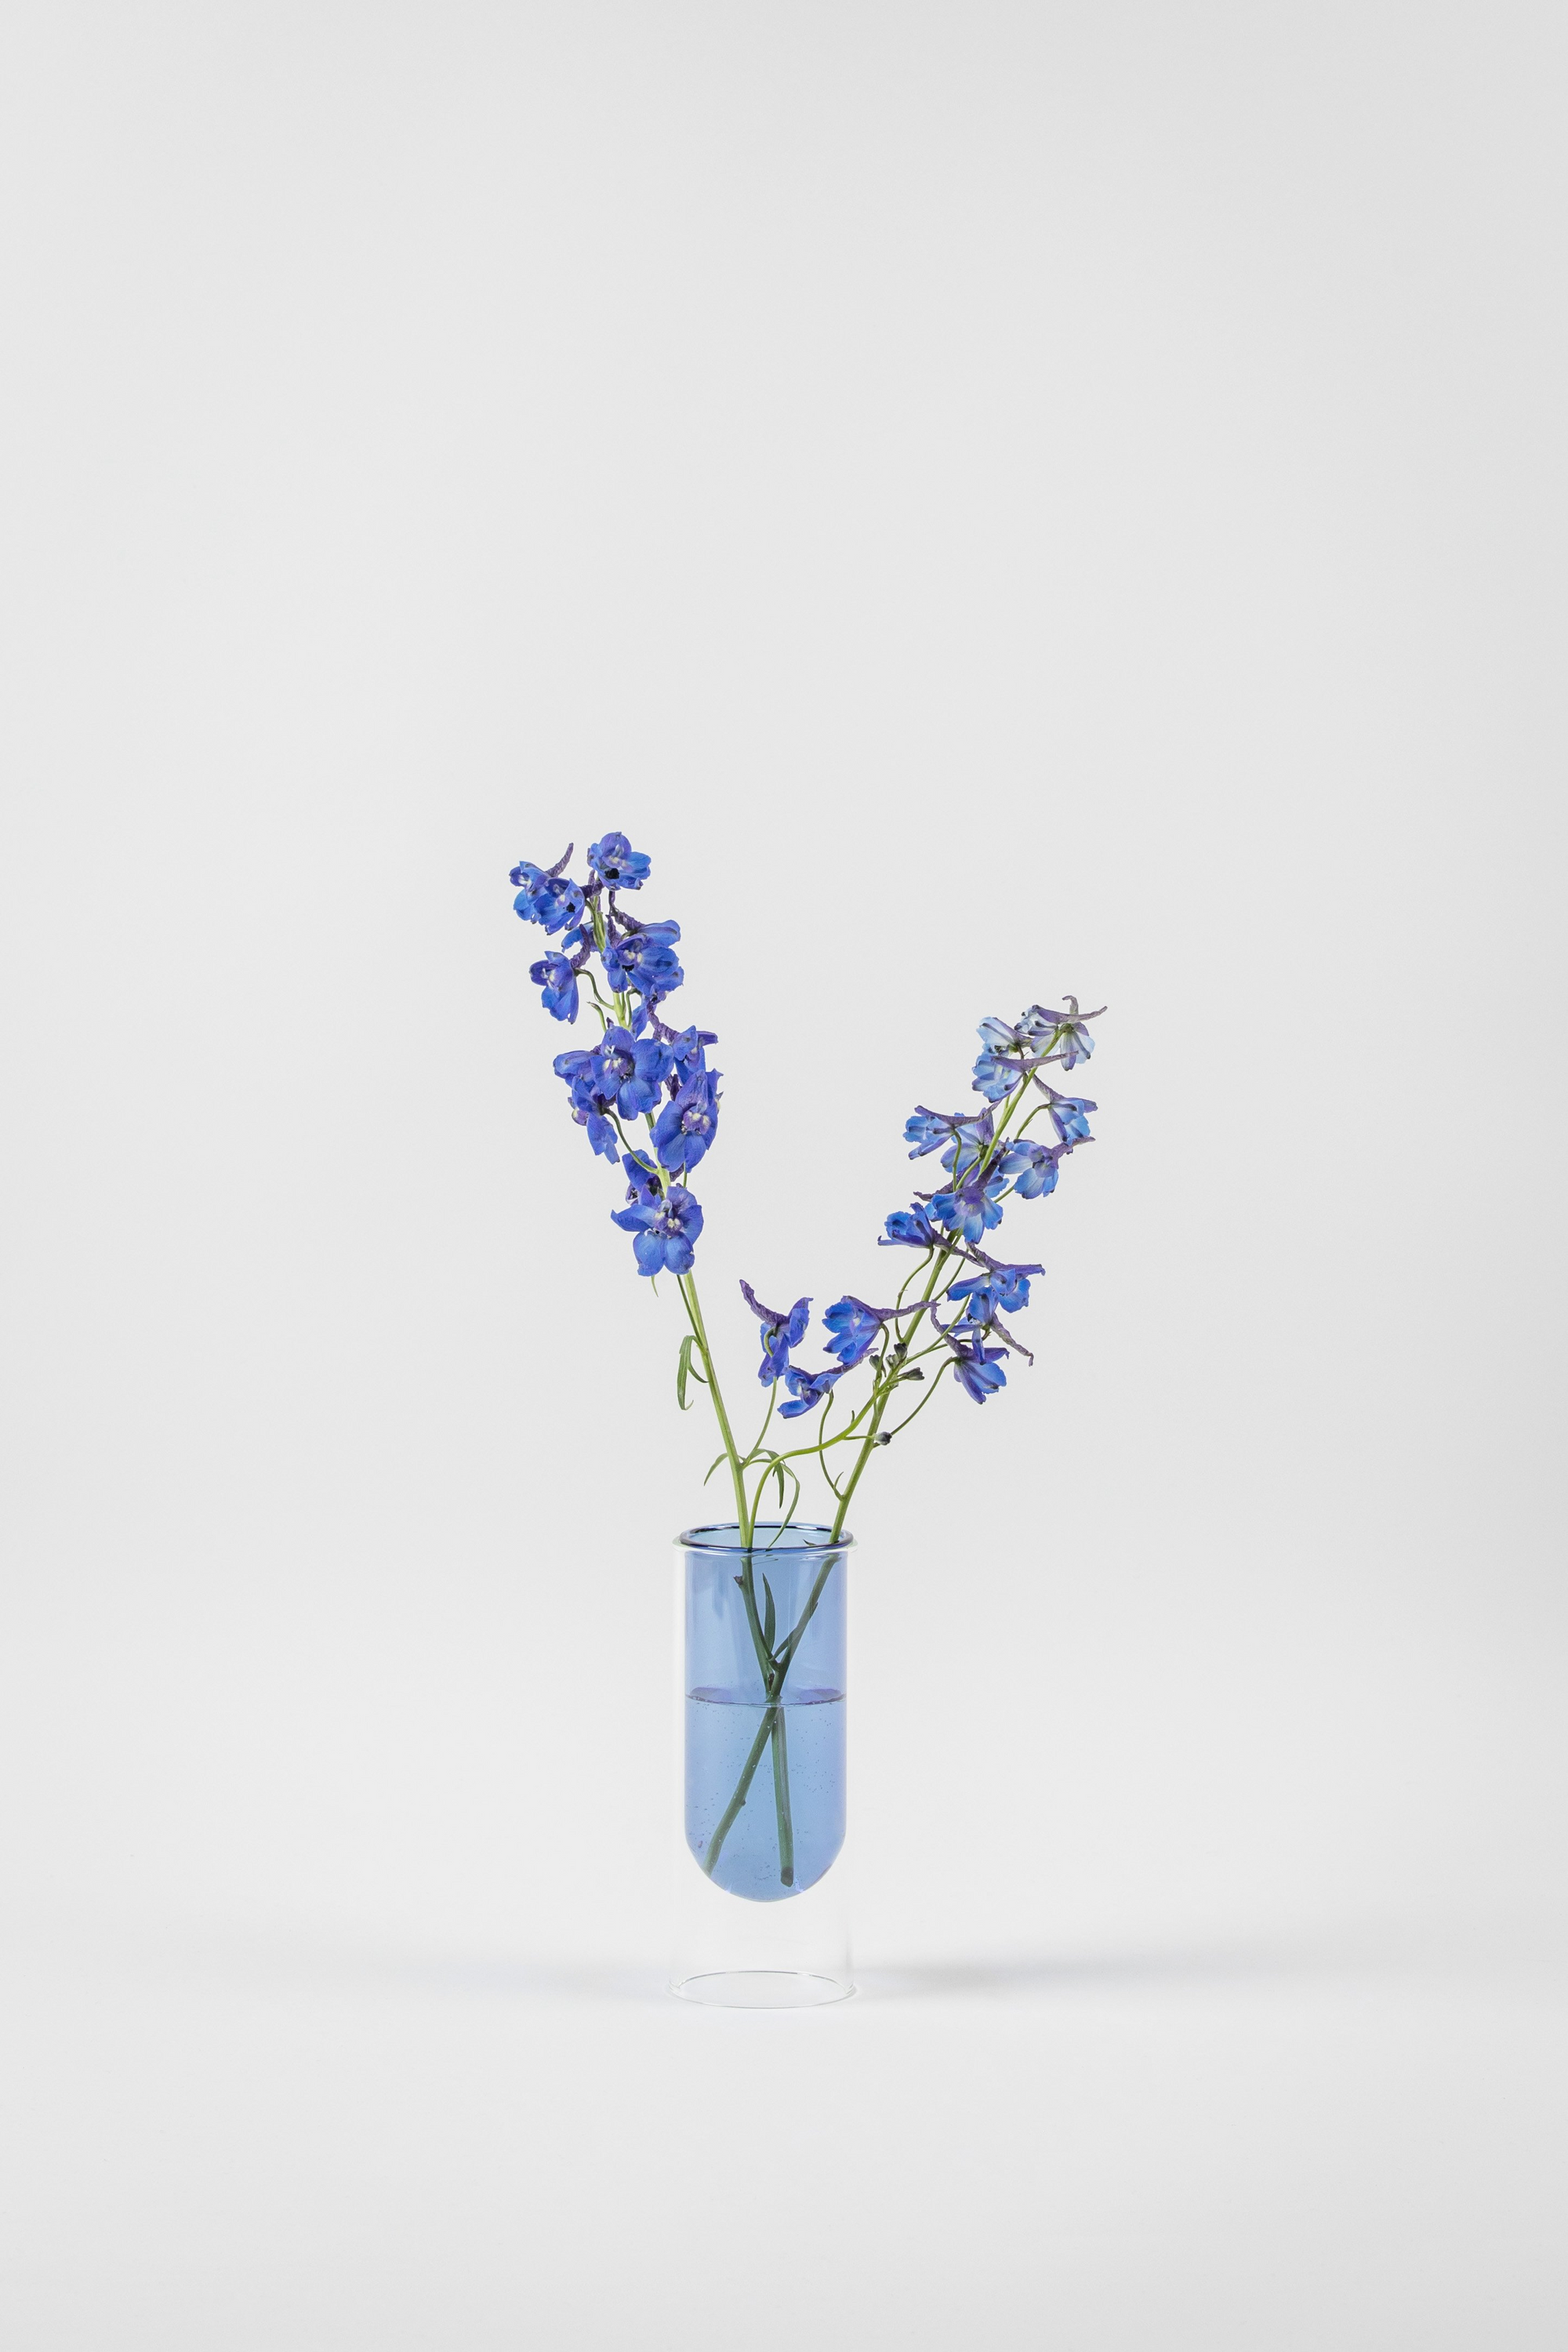 about form and function - Flower tube - blå - vase - nordcraft